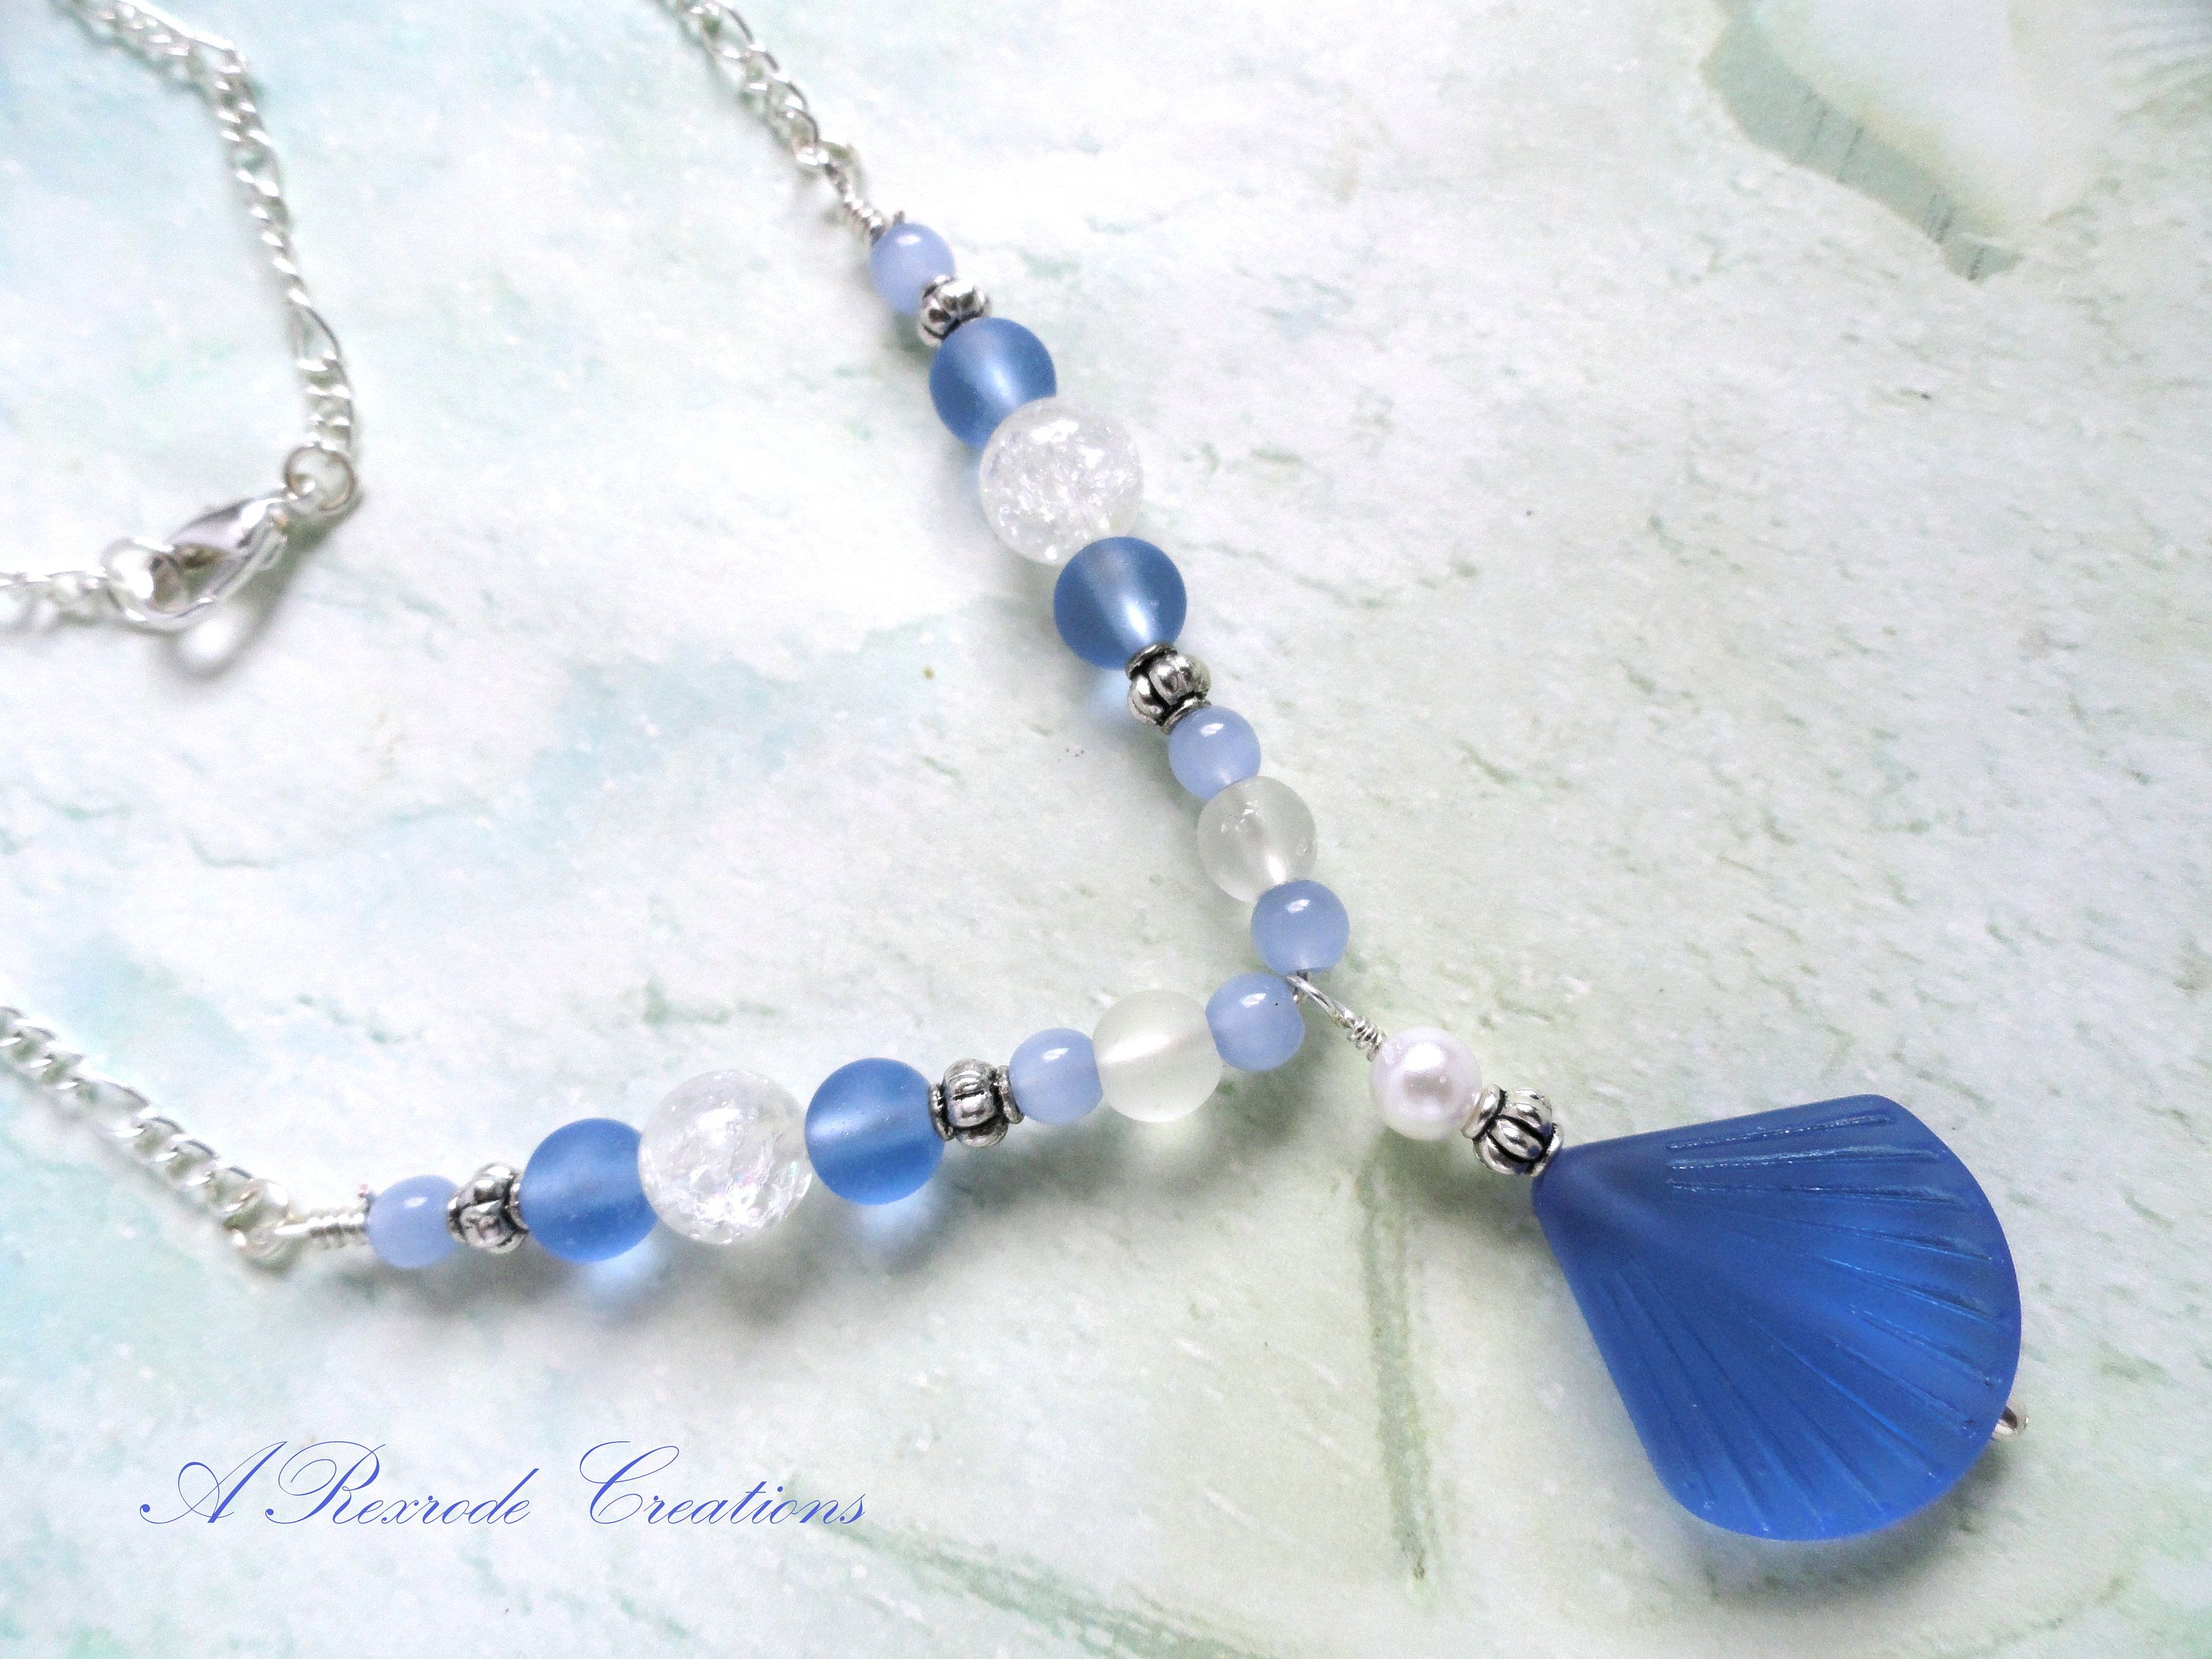 Beaded jewelry sea glass jewelry beach glass sea shell pendant beaded jewelry sea glass jewelry beach glass sea shell pendant necklace nautical summer fashion jewelry womens mozeypictures Image collections